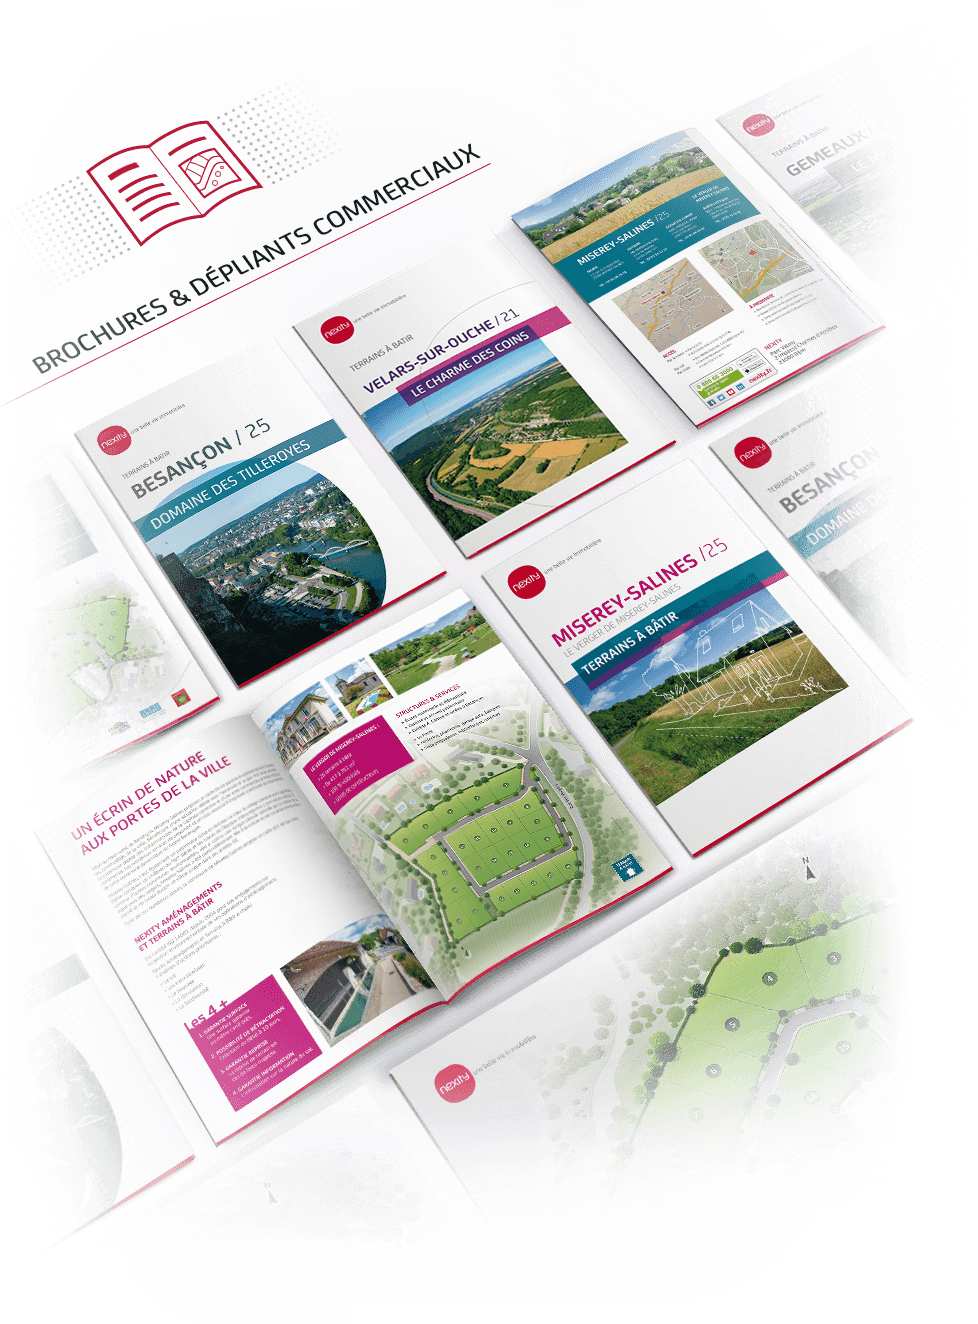 Supports de communication NEXITY Bourgogne - Franche-Comté - image Brochures-commerciales-Nexity-Prepresse-PAO on https://www.philippe-mignotte.fr